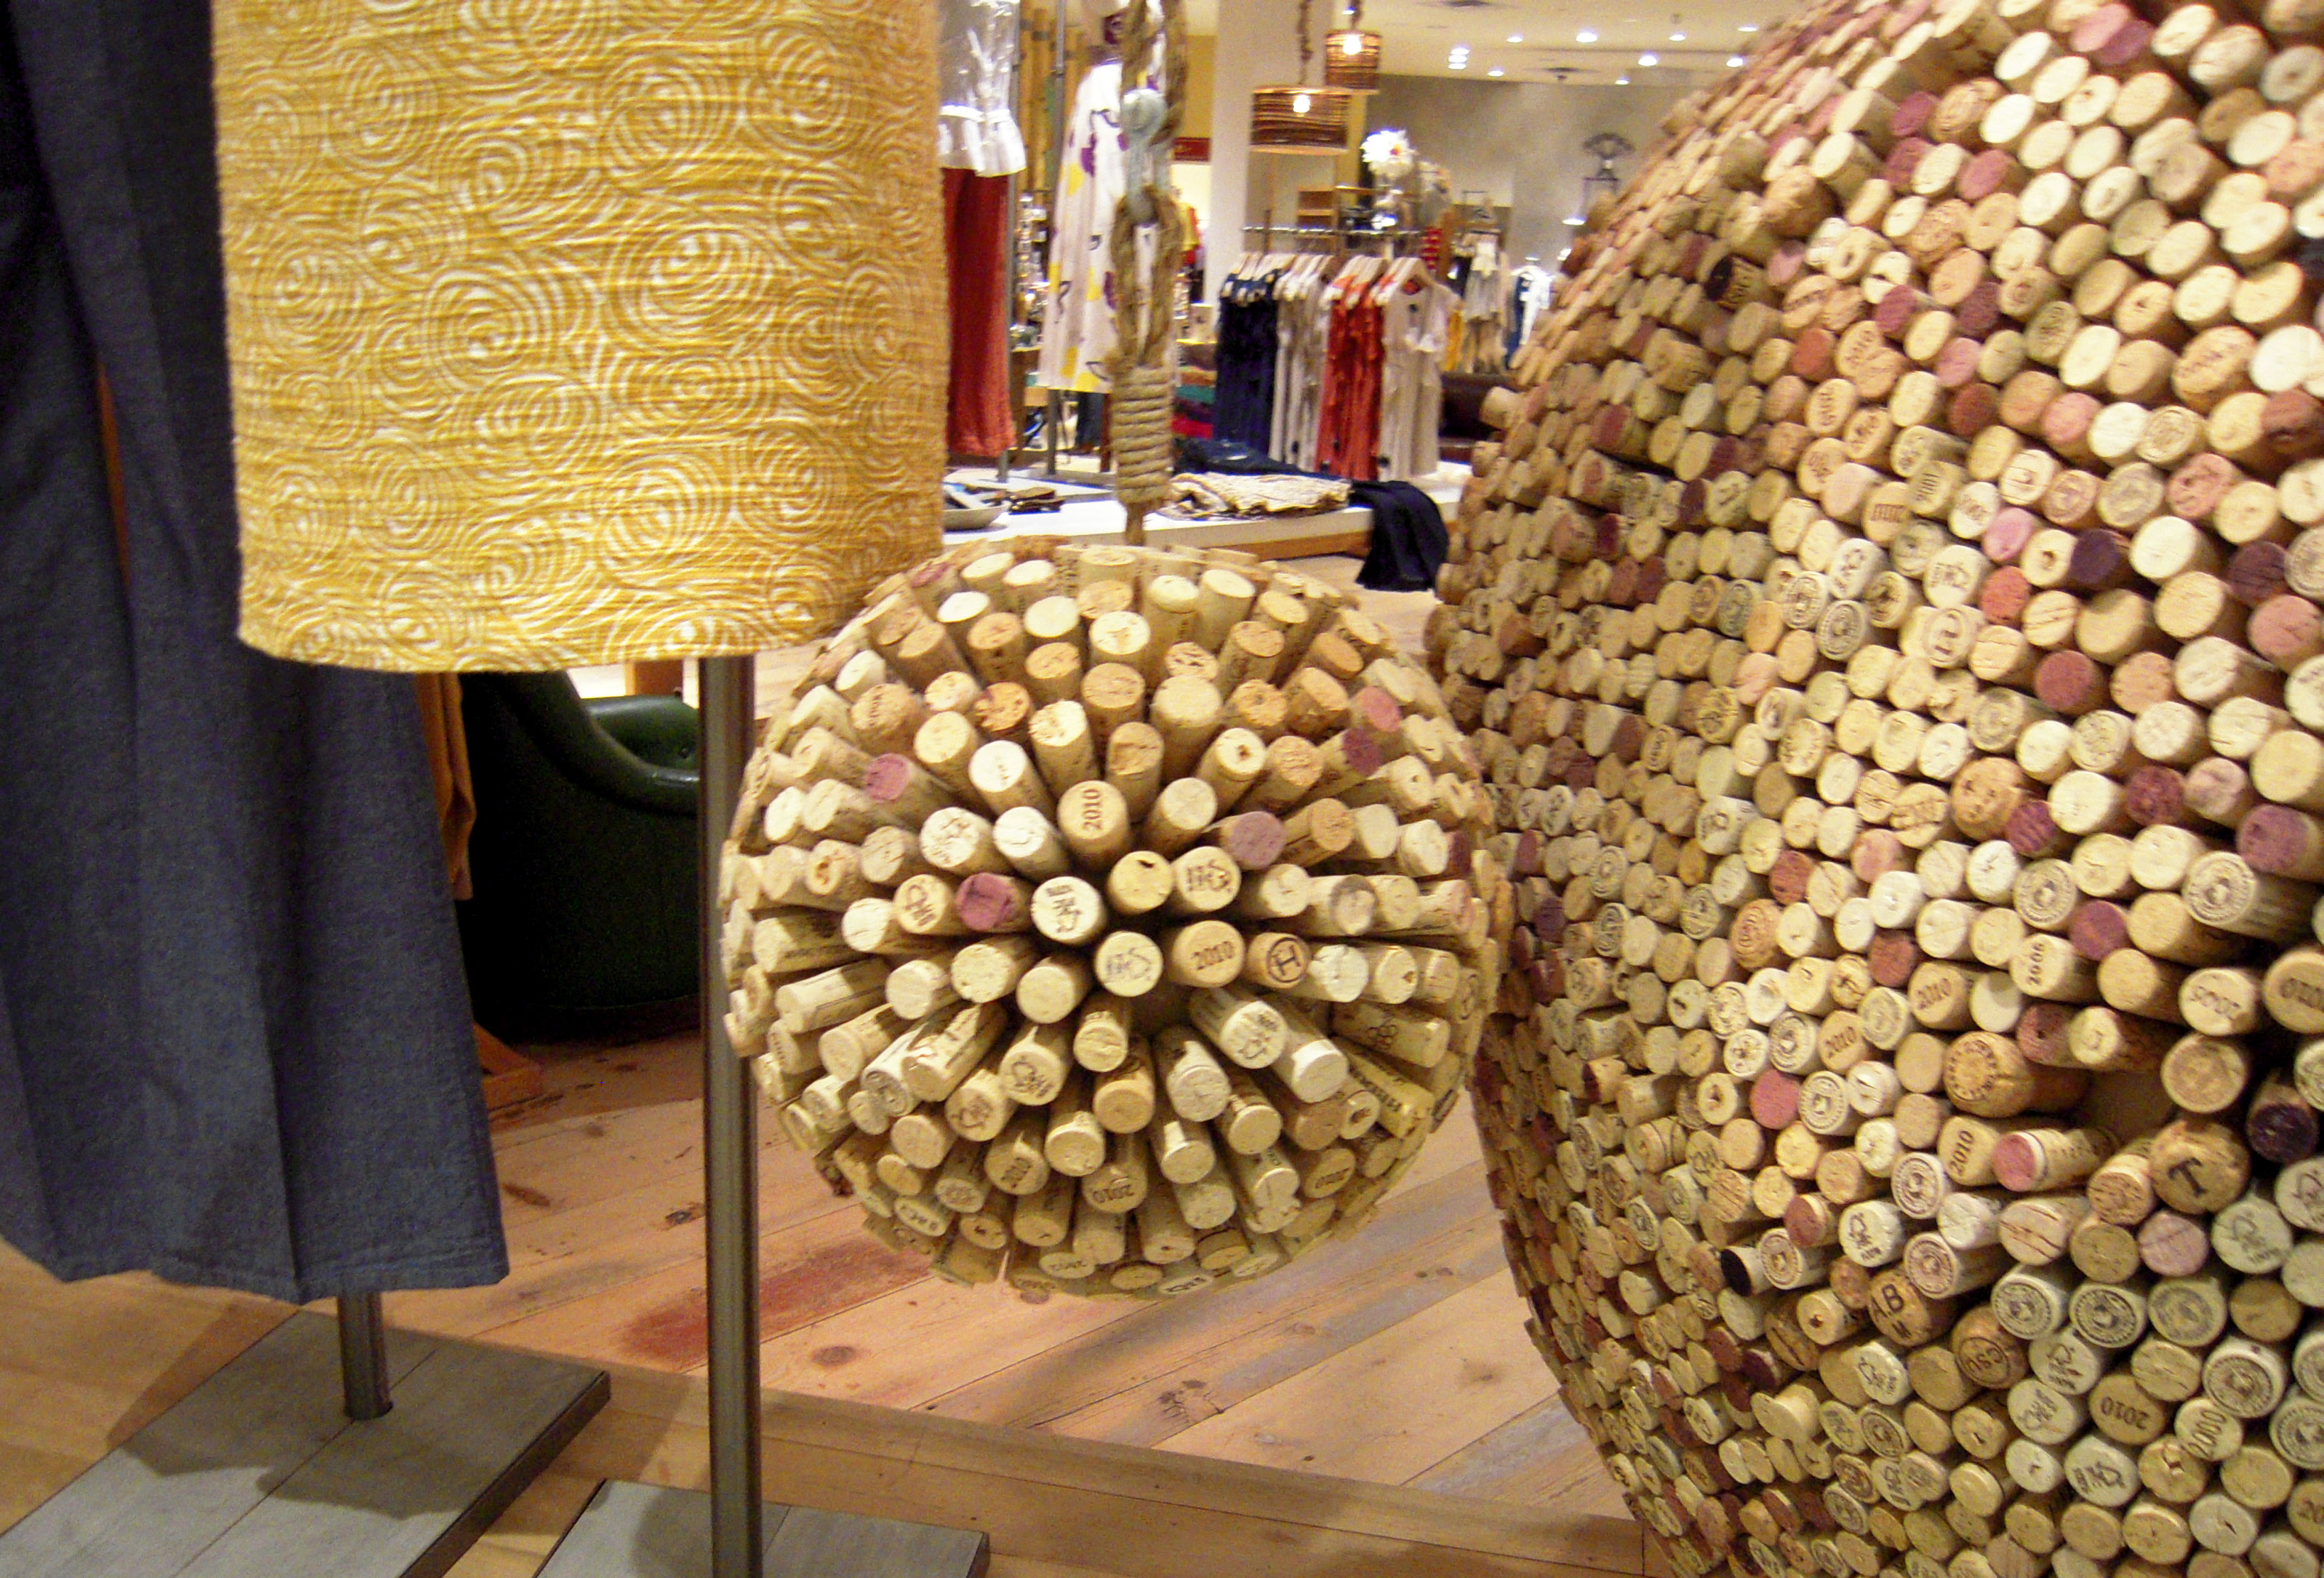 Anthropologie window display of cork balls made from recycled wine corks